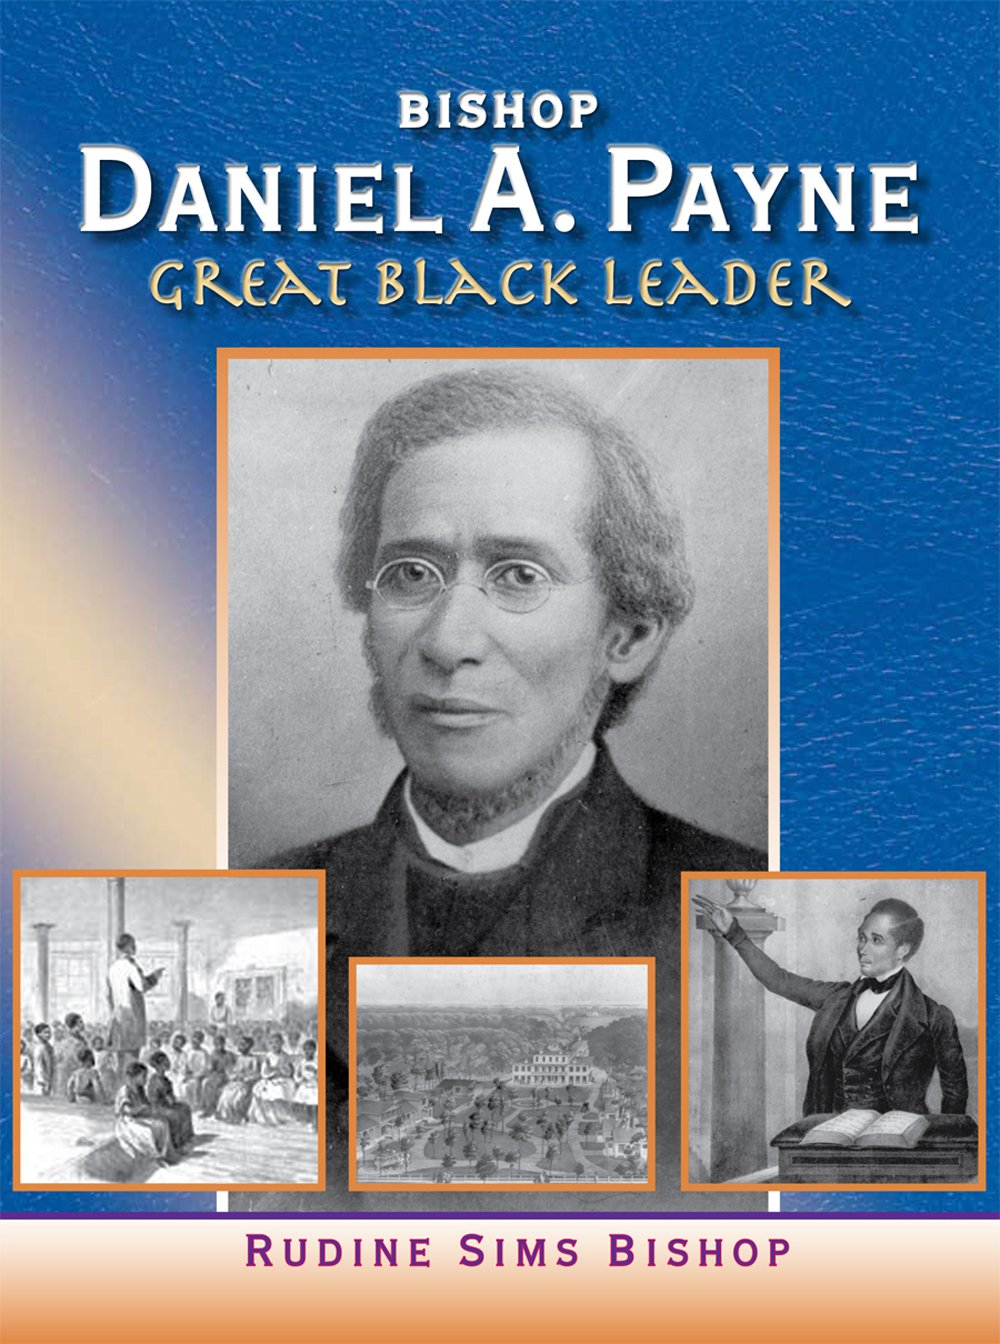 Bishop Daniel A. Payne: Great Black Leader – Dr. Rudine Sims Bishop